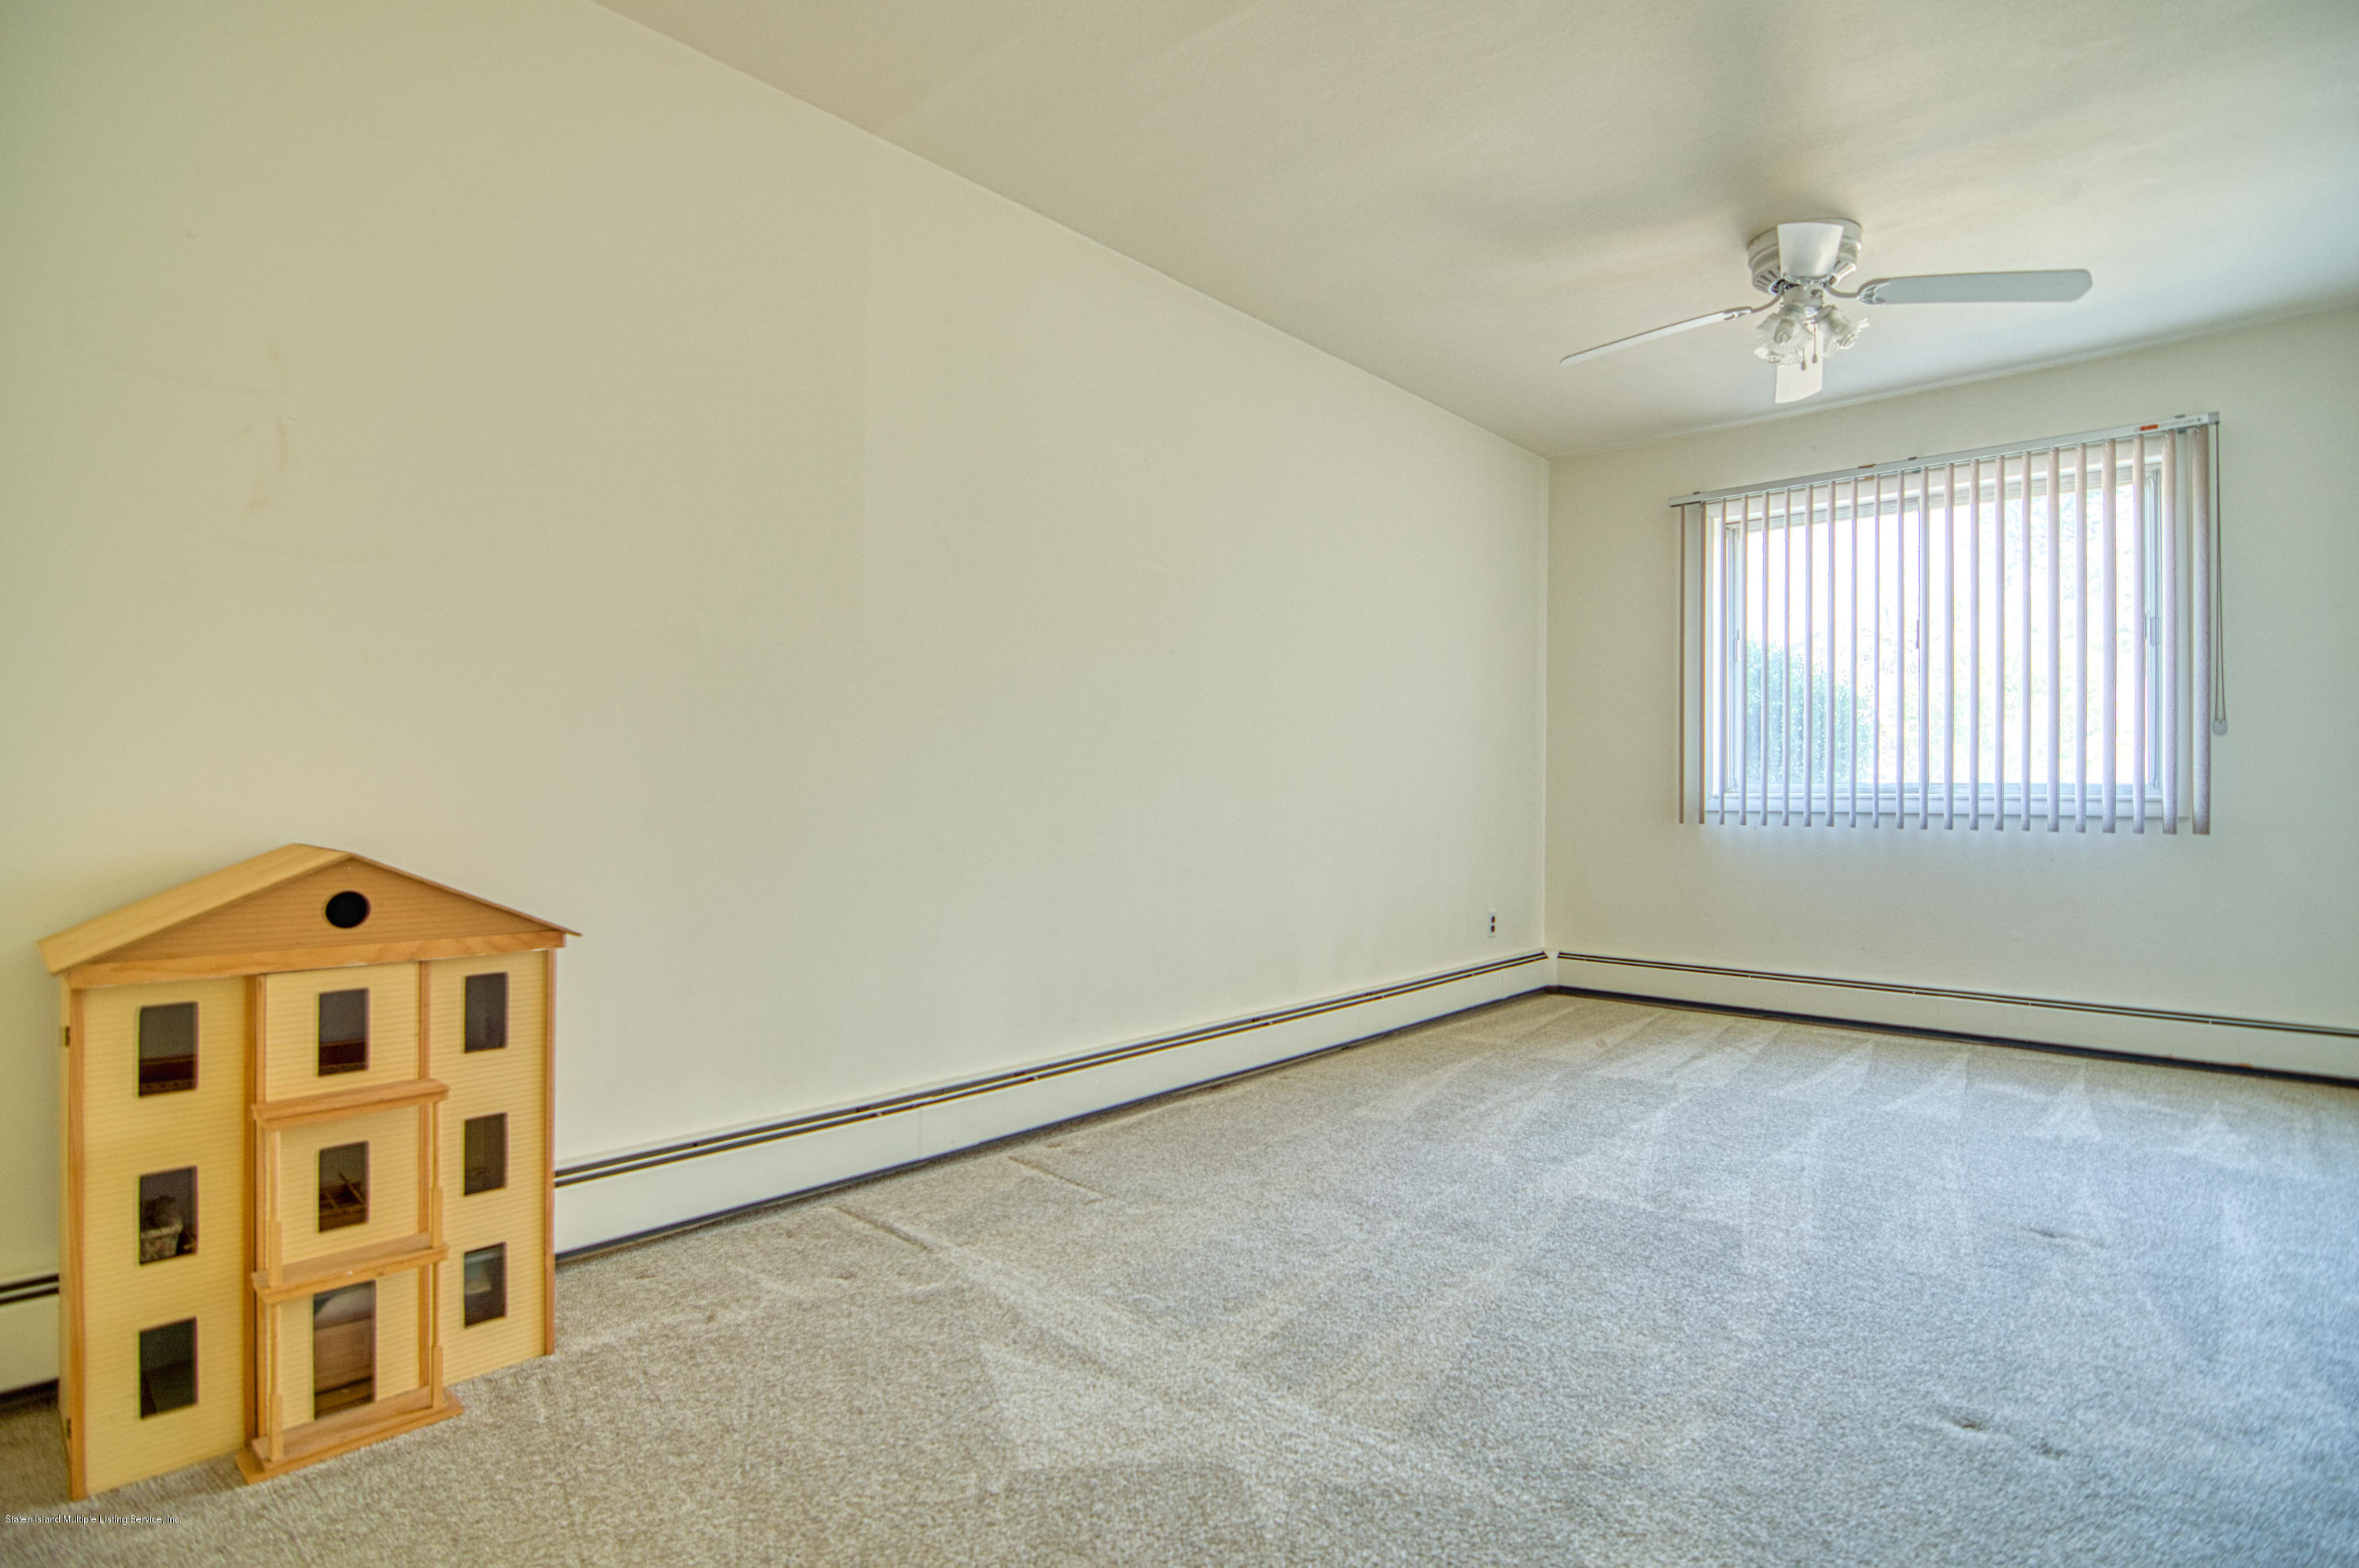 Single Family - Detached 124 Queen Street  Staten Island, NY 10314, MLS-1131413-9